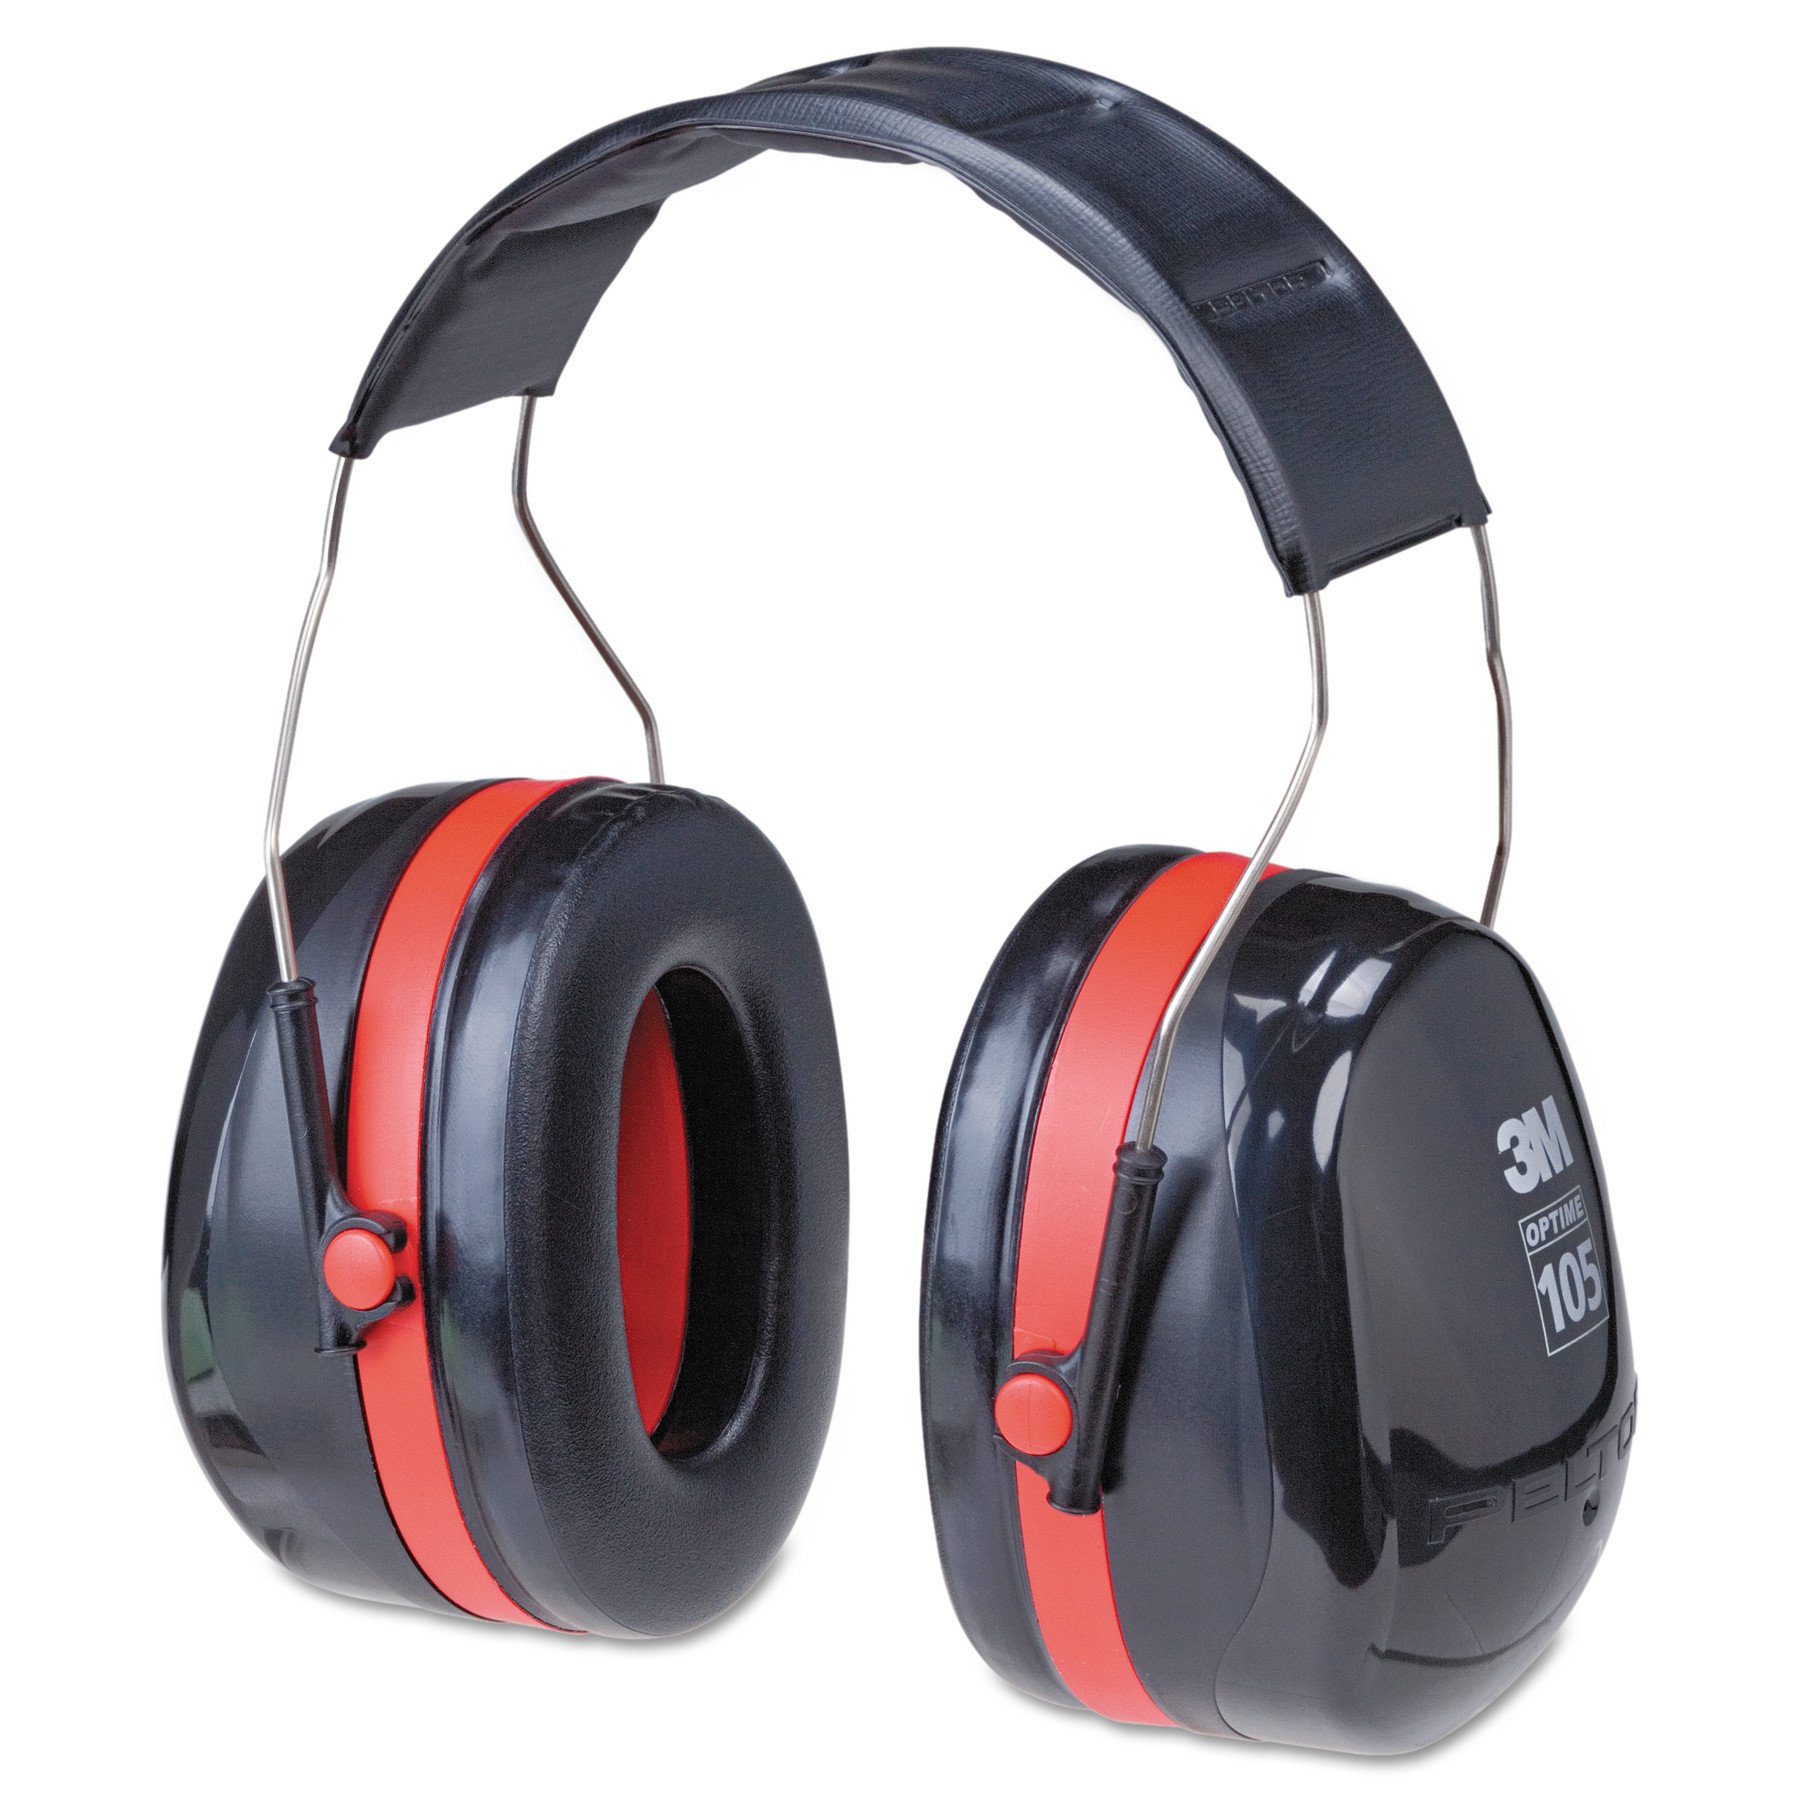 3M Peltor Optime 105 Over the Head Earmuff, Ear Protectors, Hearing Protection, NRR 30 dB by 3M